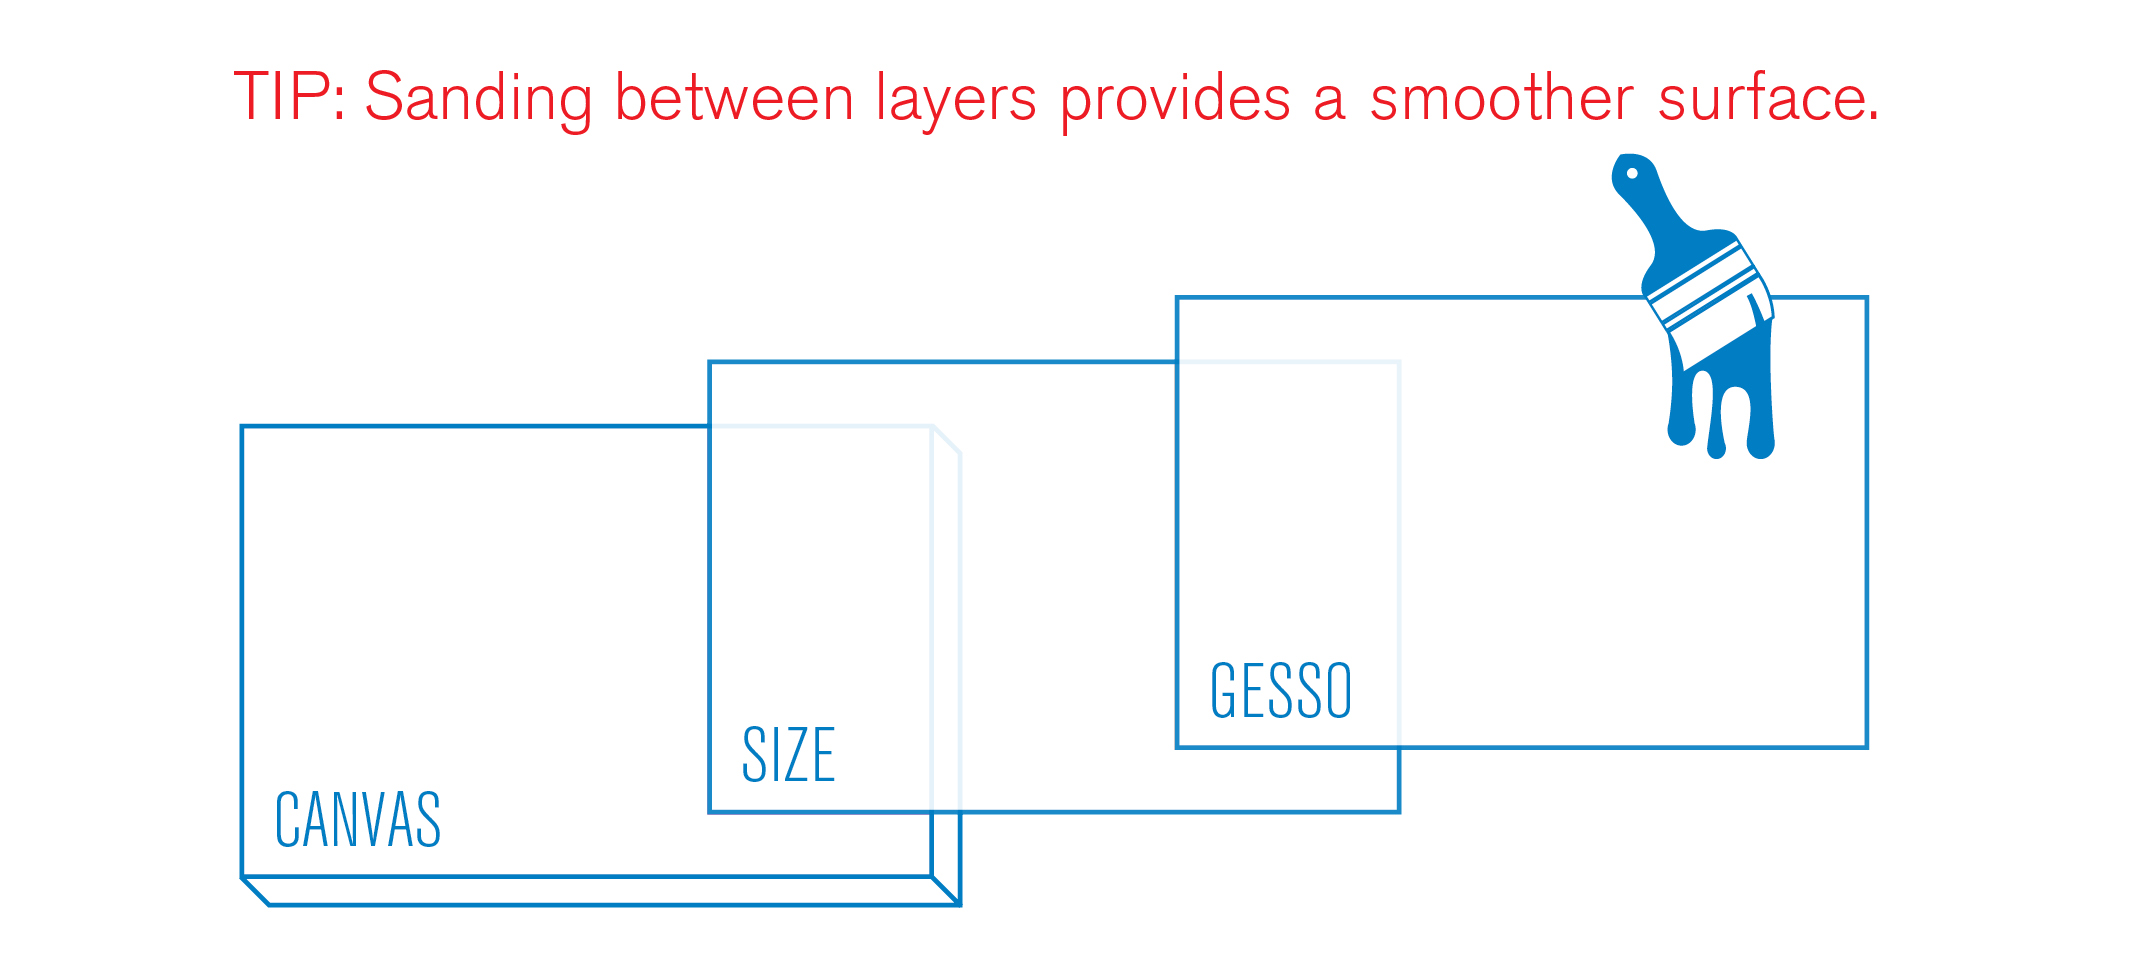 Tip: Sanding between layers provides a smoother surface